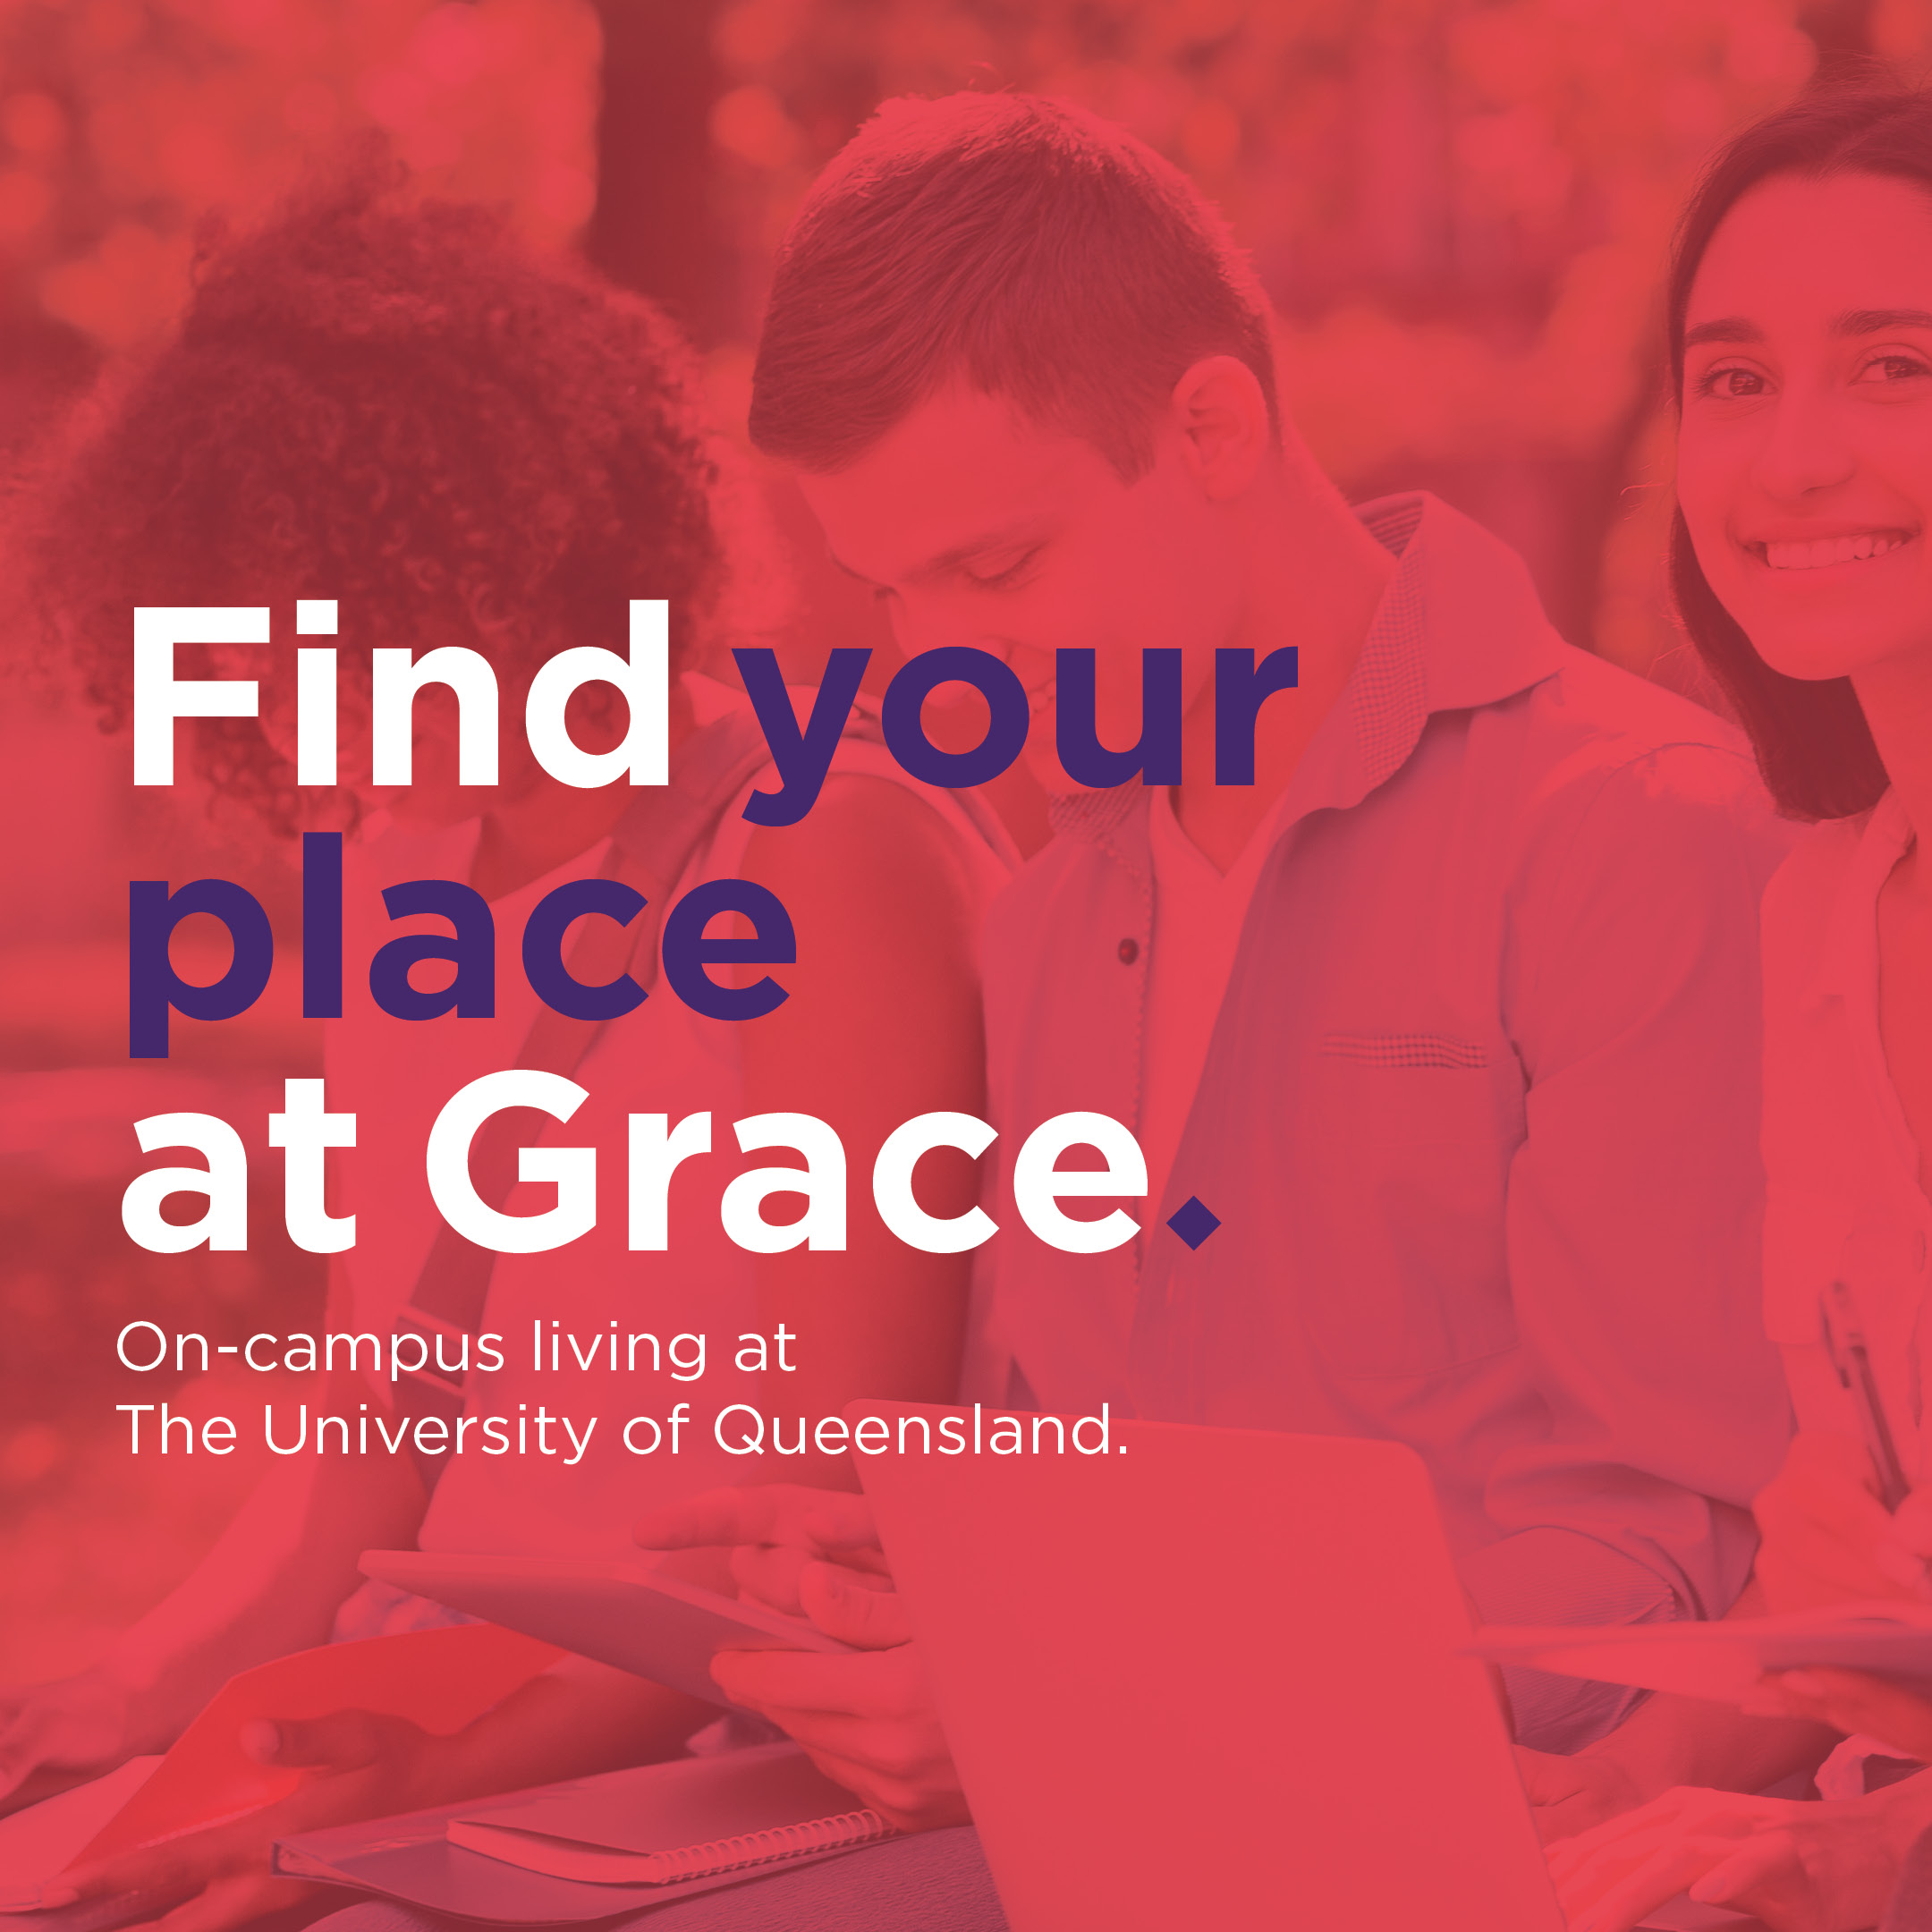 Find your place at Grace